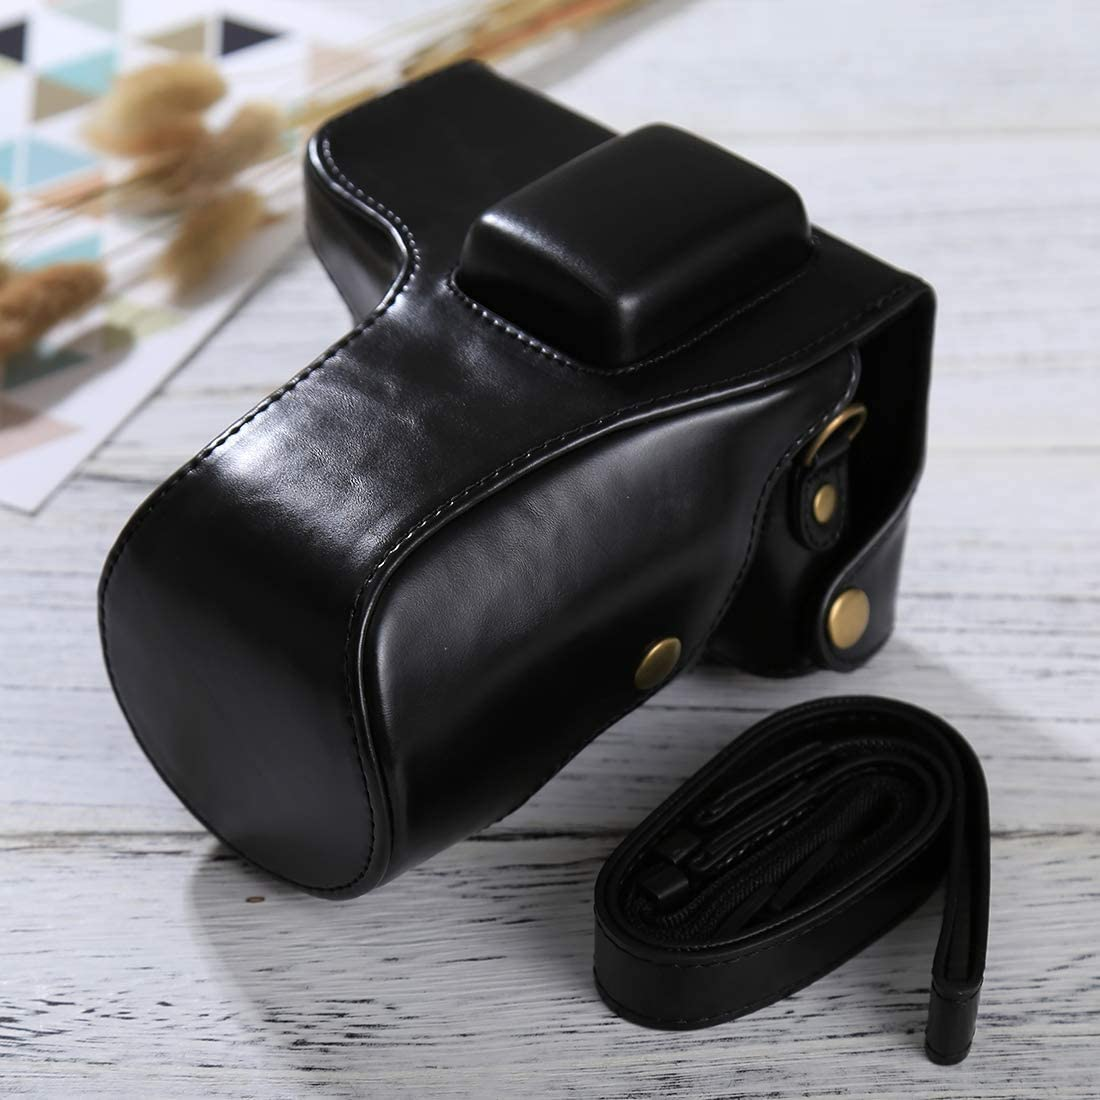 YANTAIANJANE Camera Accessories Full Body Camera PU Leather Case Bag with Strap for Samsung NX300 Black Color : Black